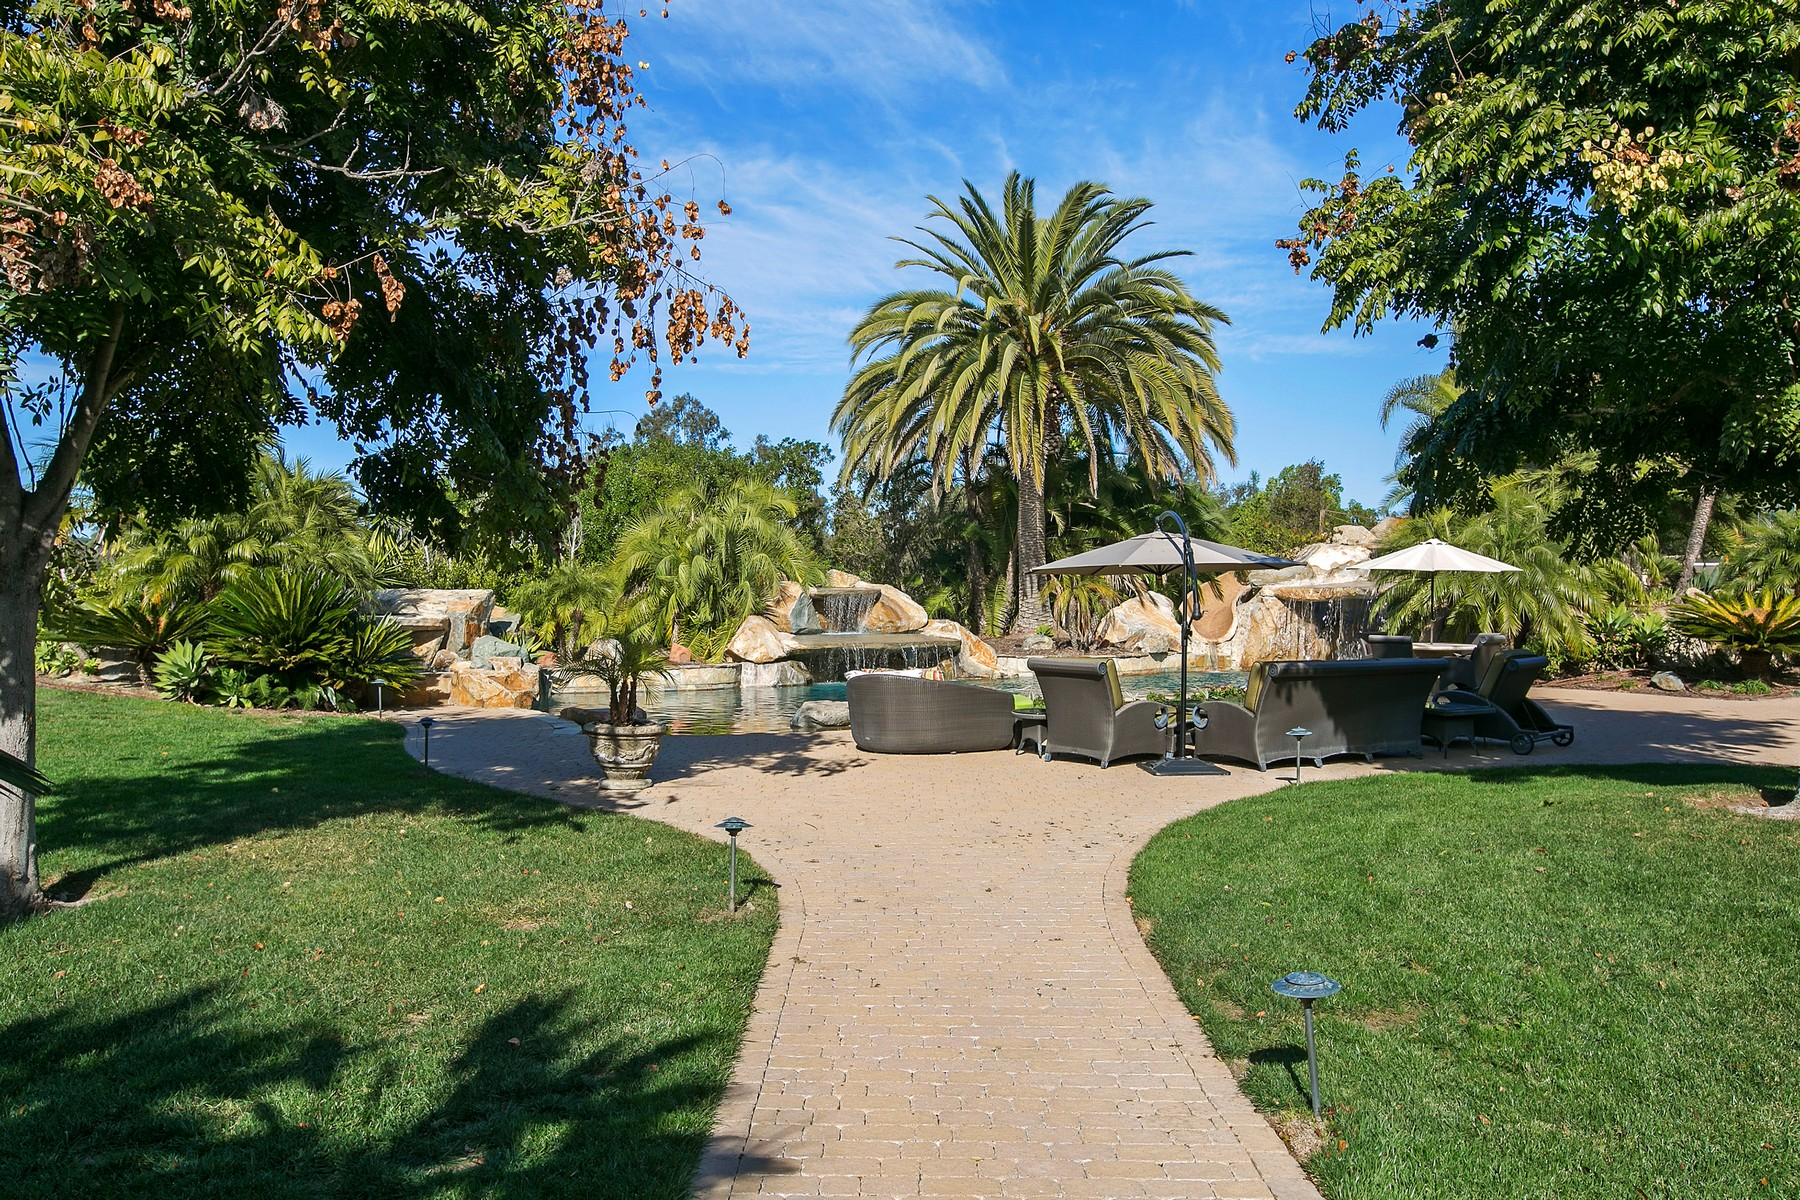 Additional photo for property listing at 15876 The River Trail  Rancho Santa Fe, California 92067 United States